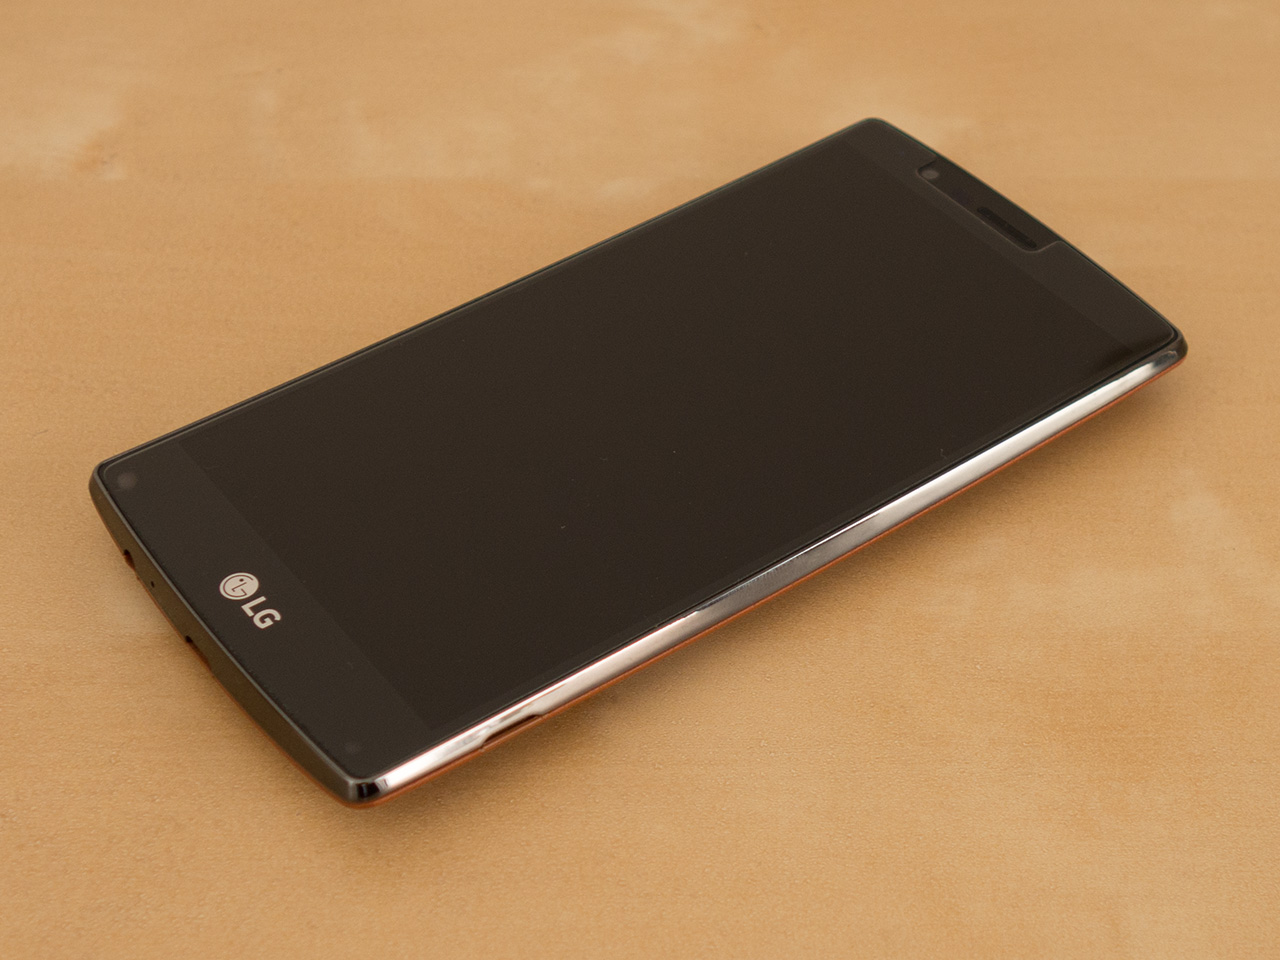 LG G4 camera review: Digital Photography Review